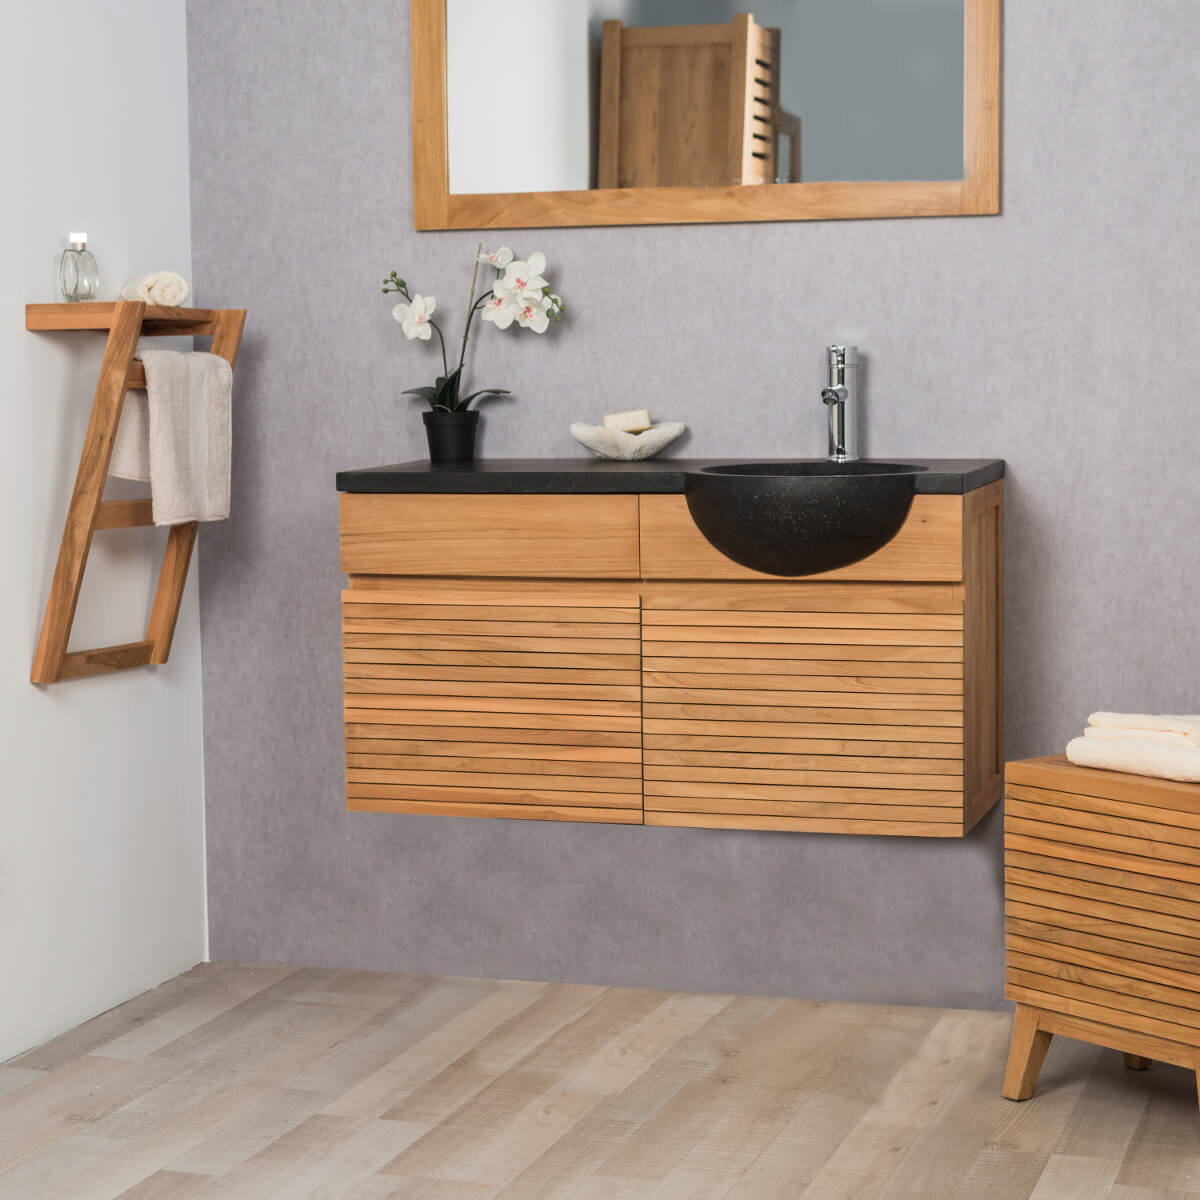 meuble salle de bain meuble suspendu teck avec vasque en pierre noir 1 m. Black Bedroom Furniture Sets. Home Design Ideas